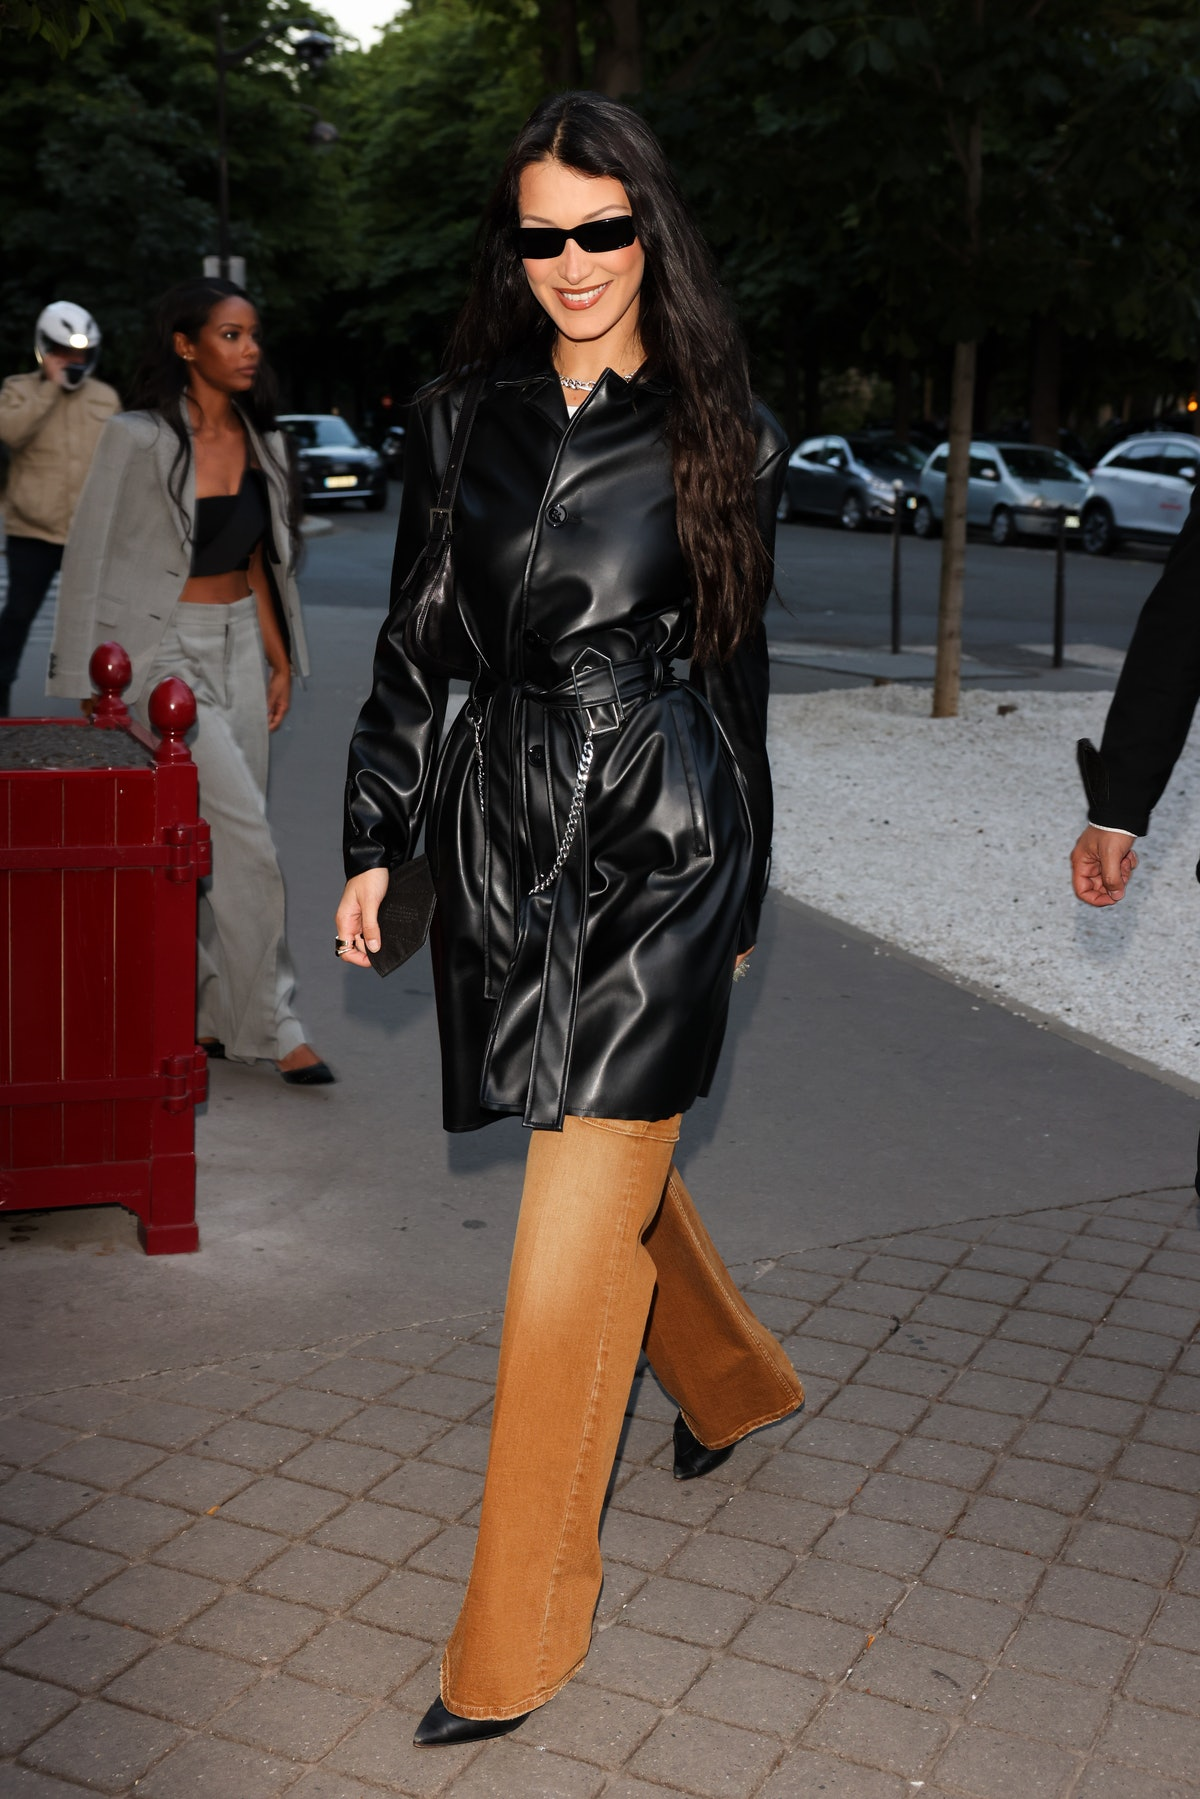 Bella Hadid wearing a leather jacket and burnt orange jeans